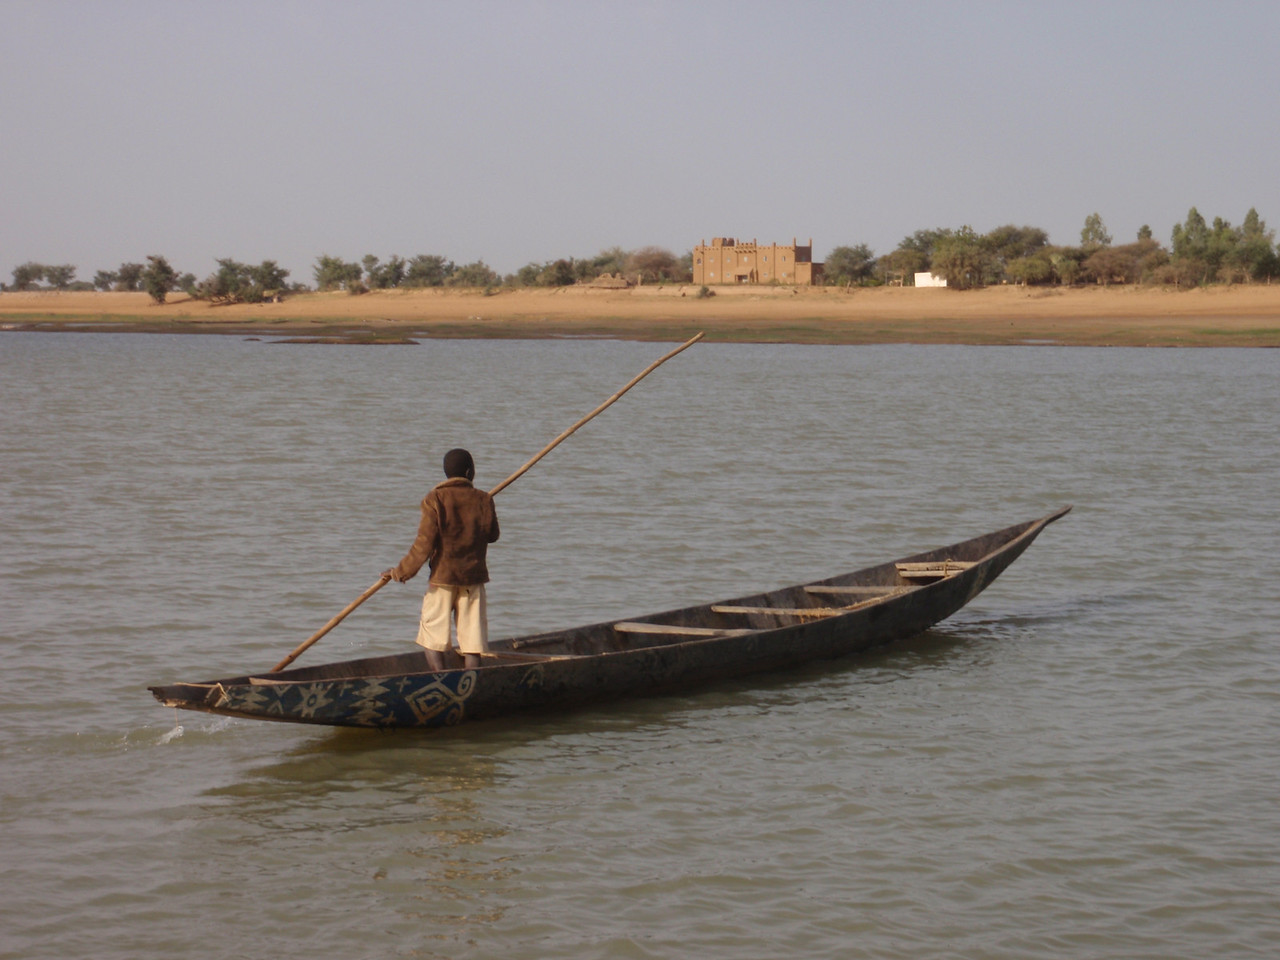 143_Djenne  Pirogue on the Bani River